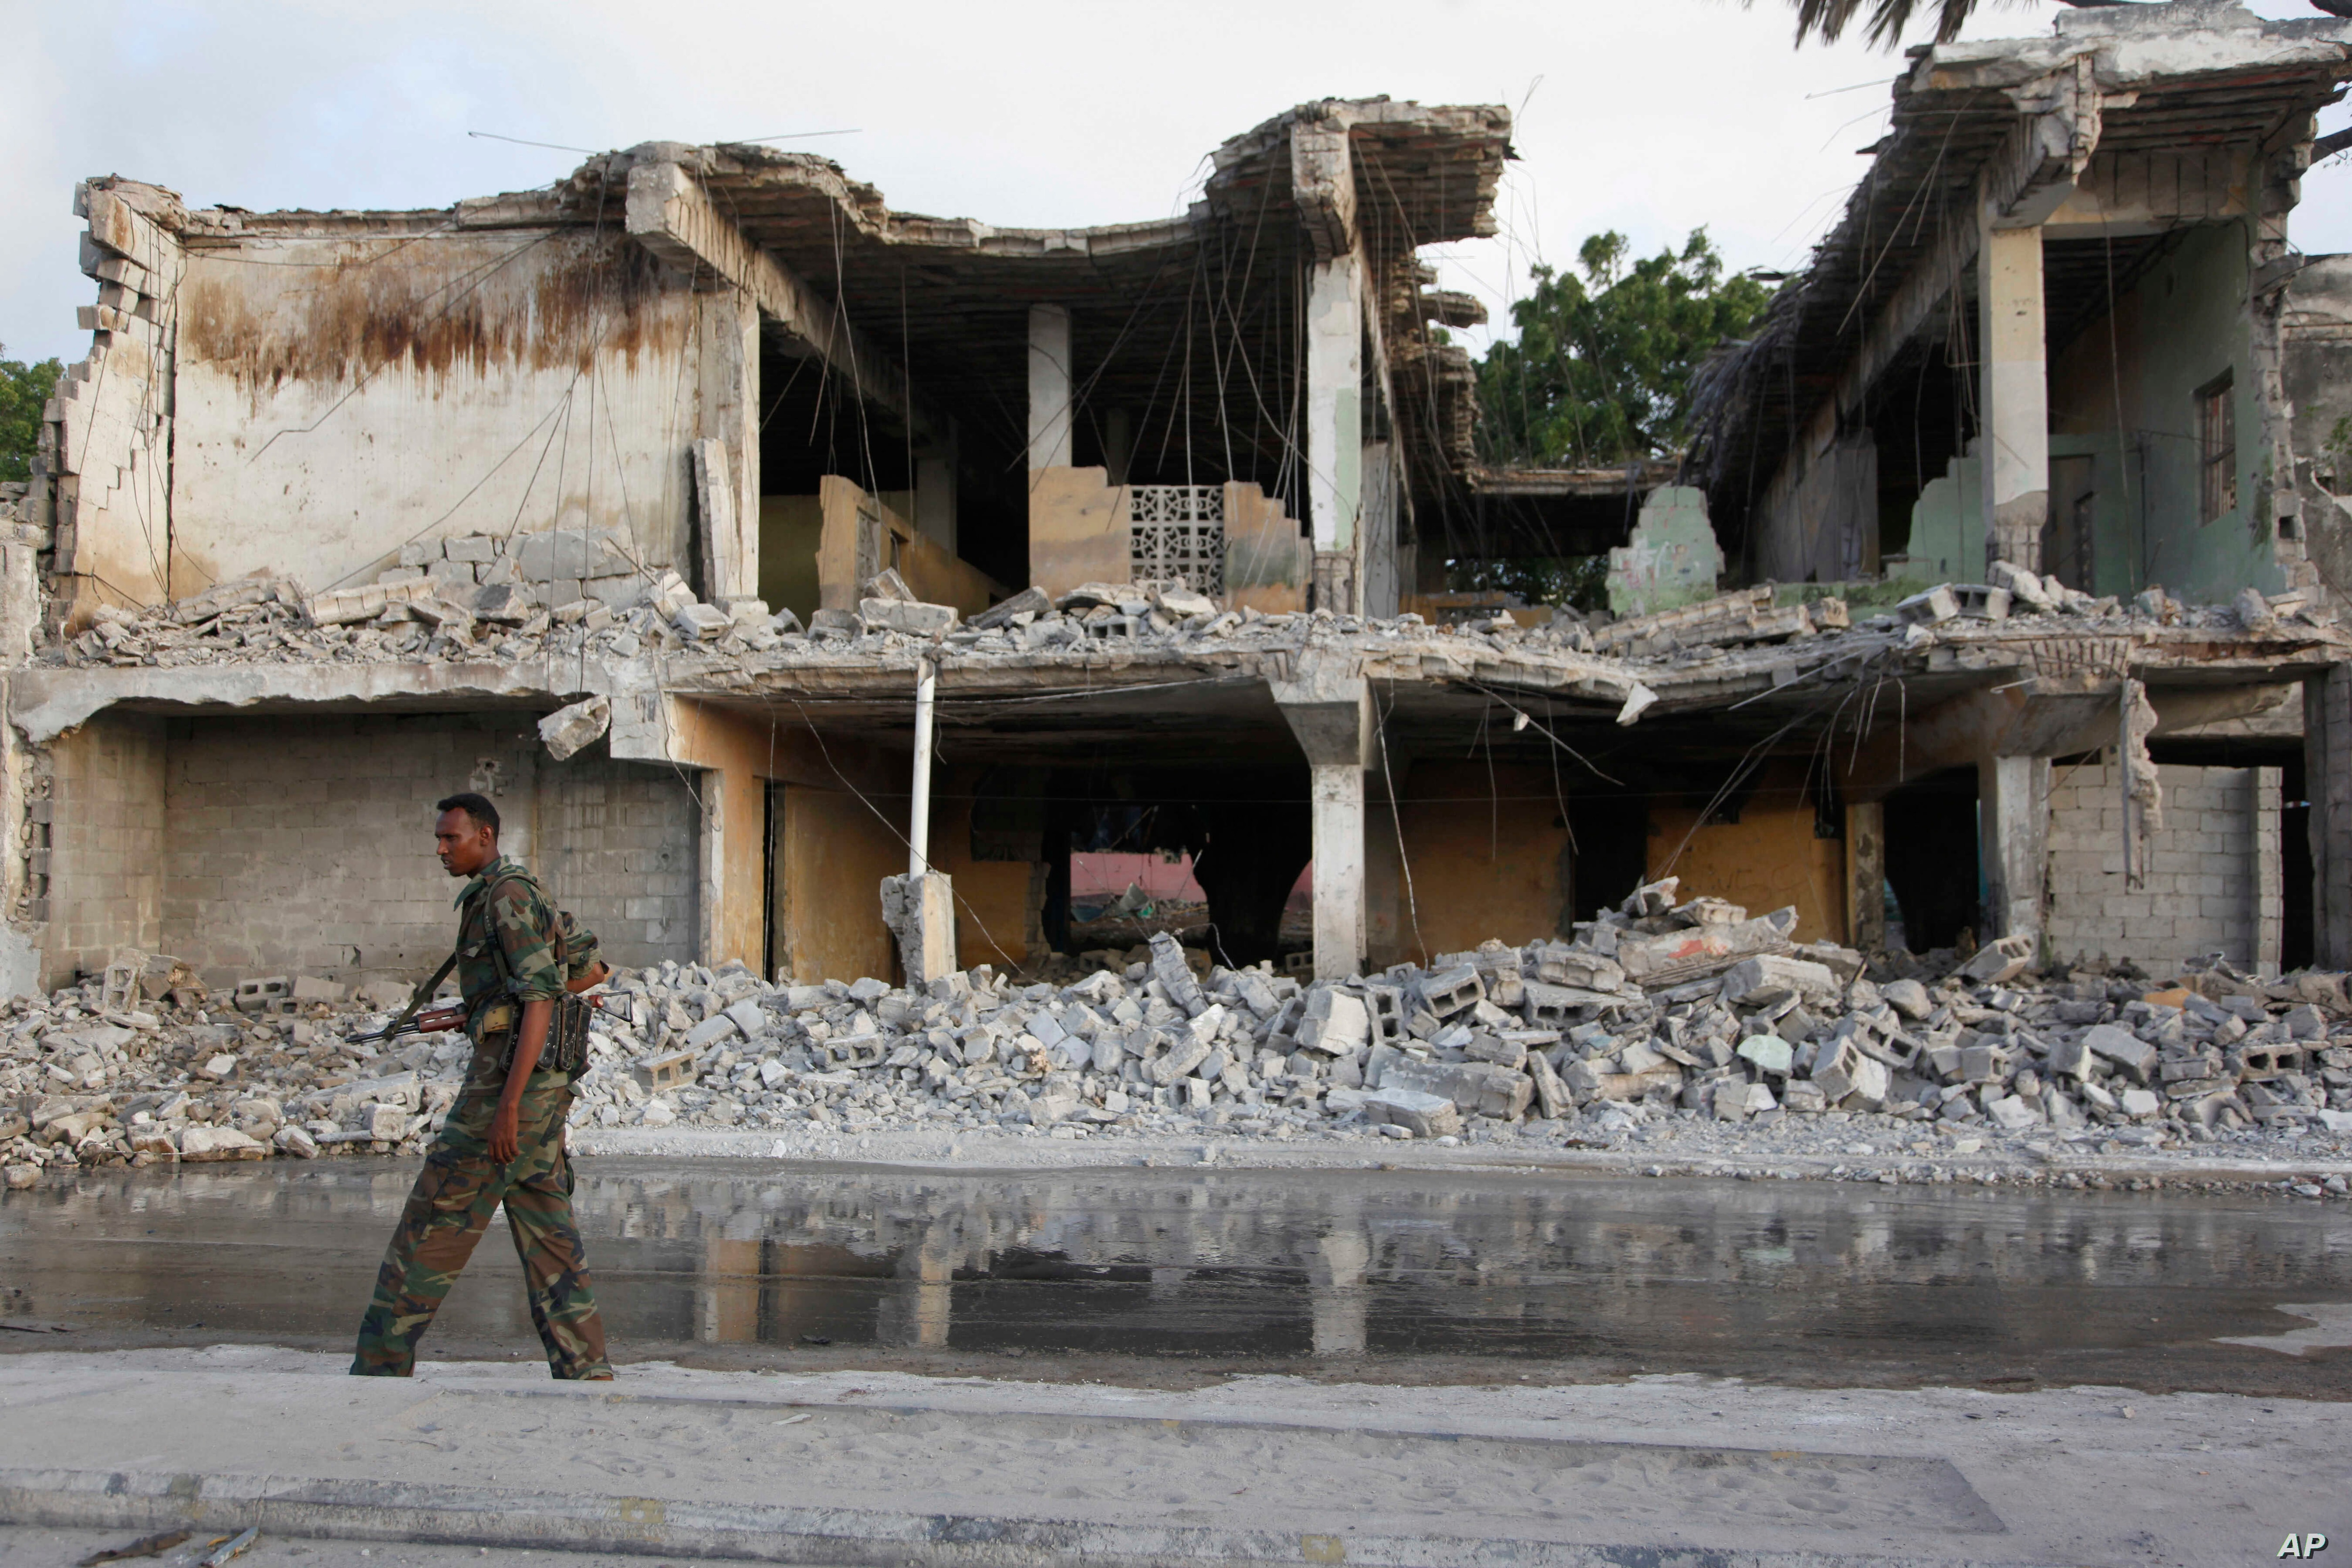 A Somali soldier walks near destroyed buildings, Feb. 27, 2016 after a suicide car bomb on Friday night in Mogadishu, Somalia.